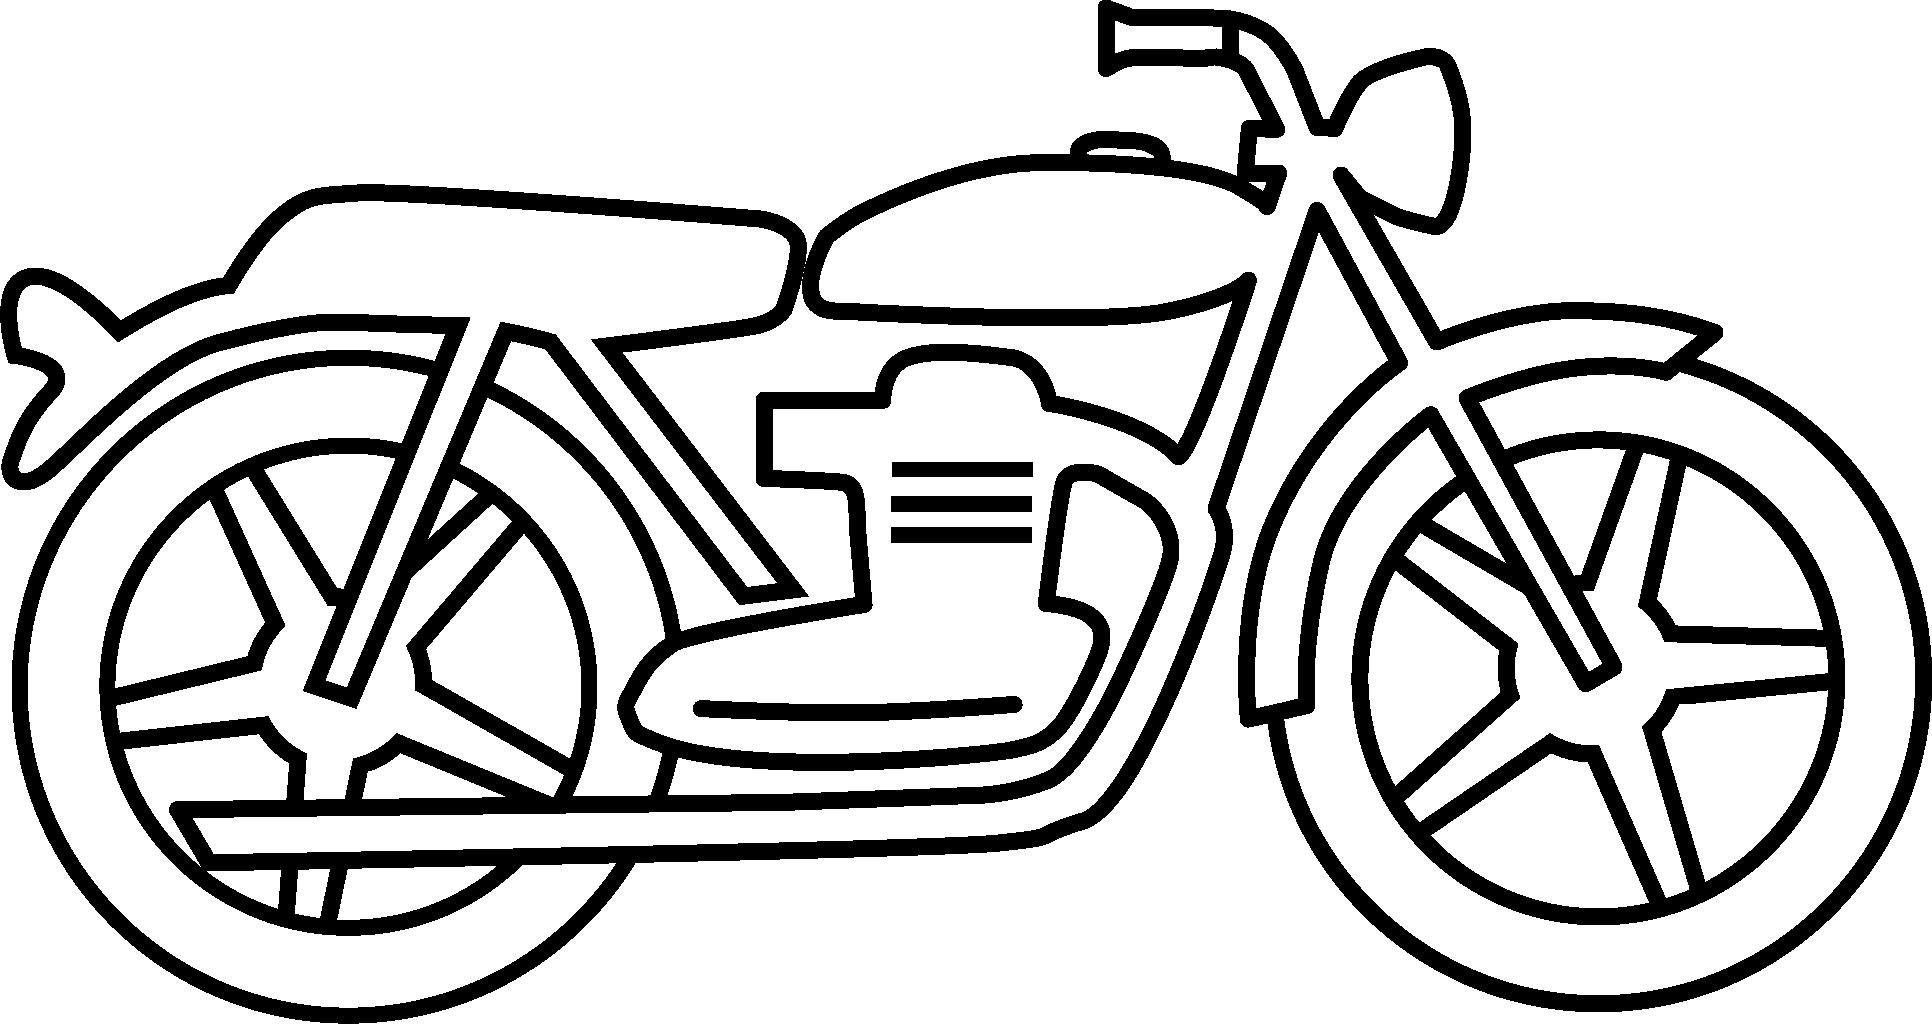 Bicycle Clipart Black And White | Free download best Bicycle ... for Bicycle Clipart Black And White  174mzq